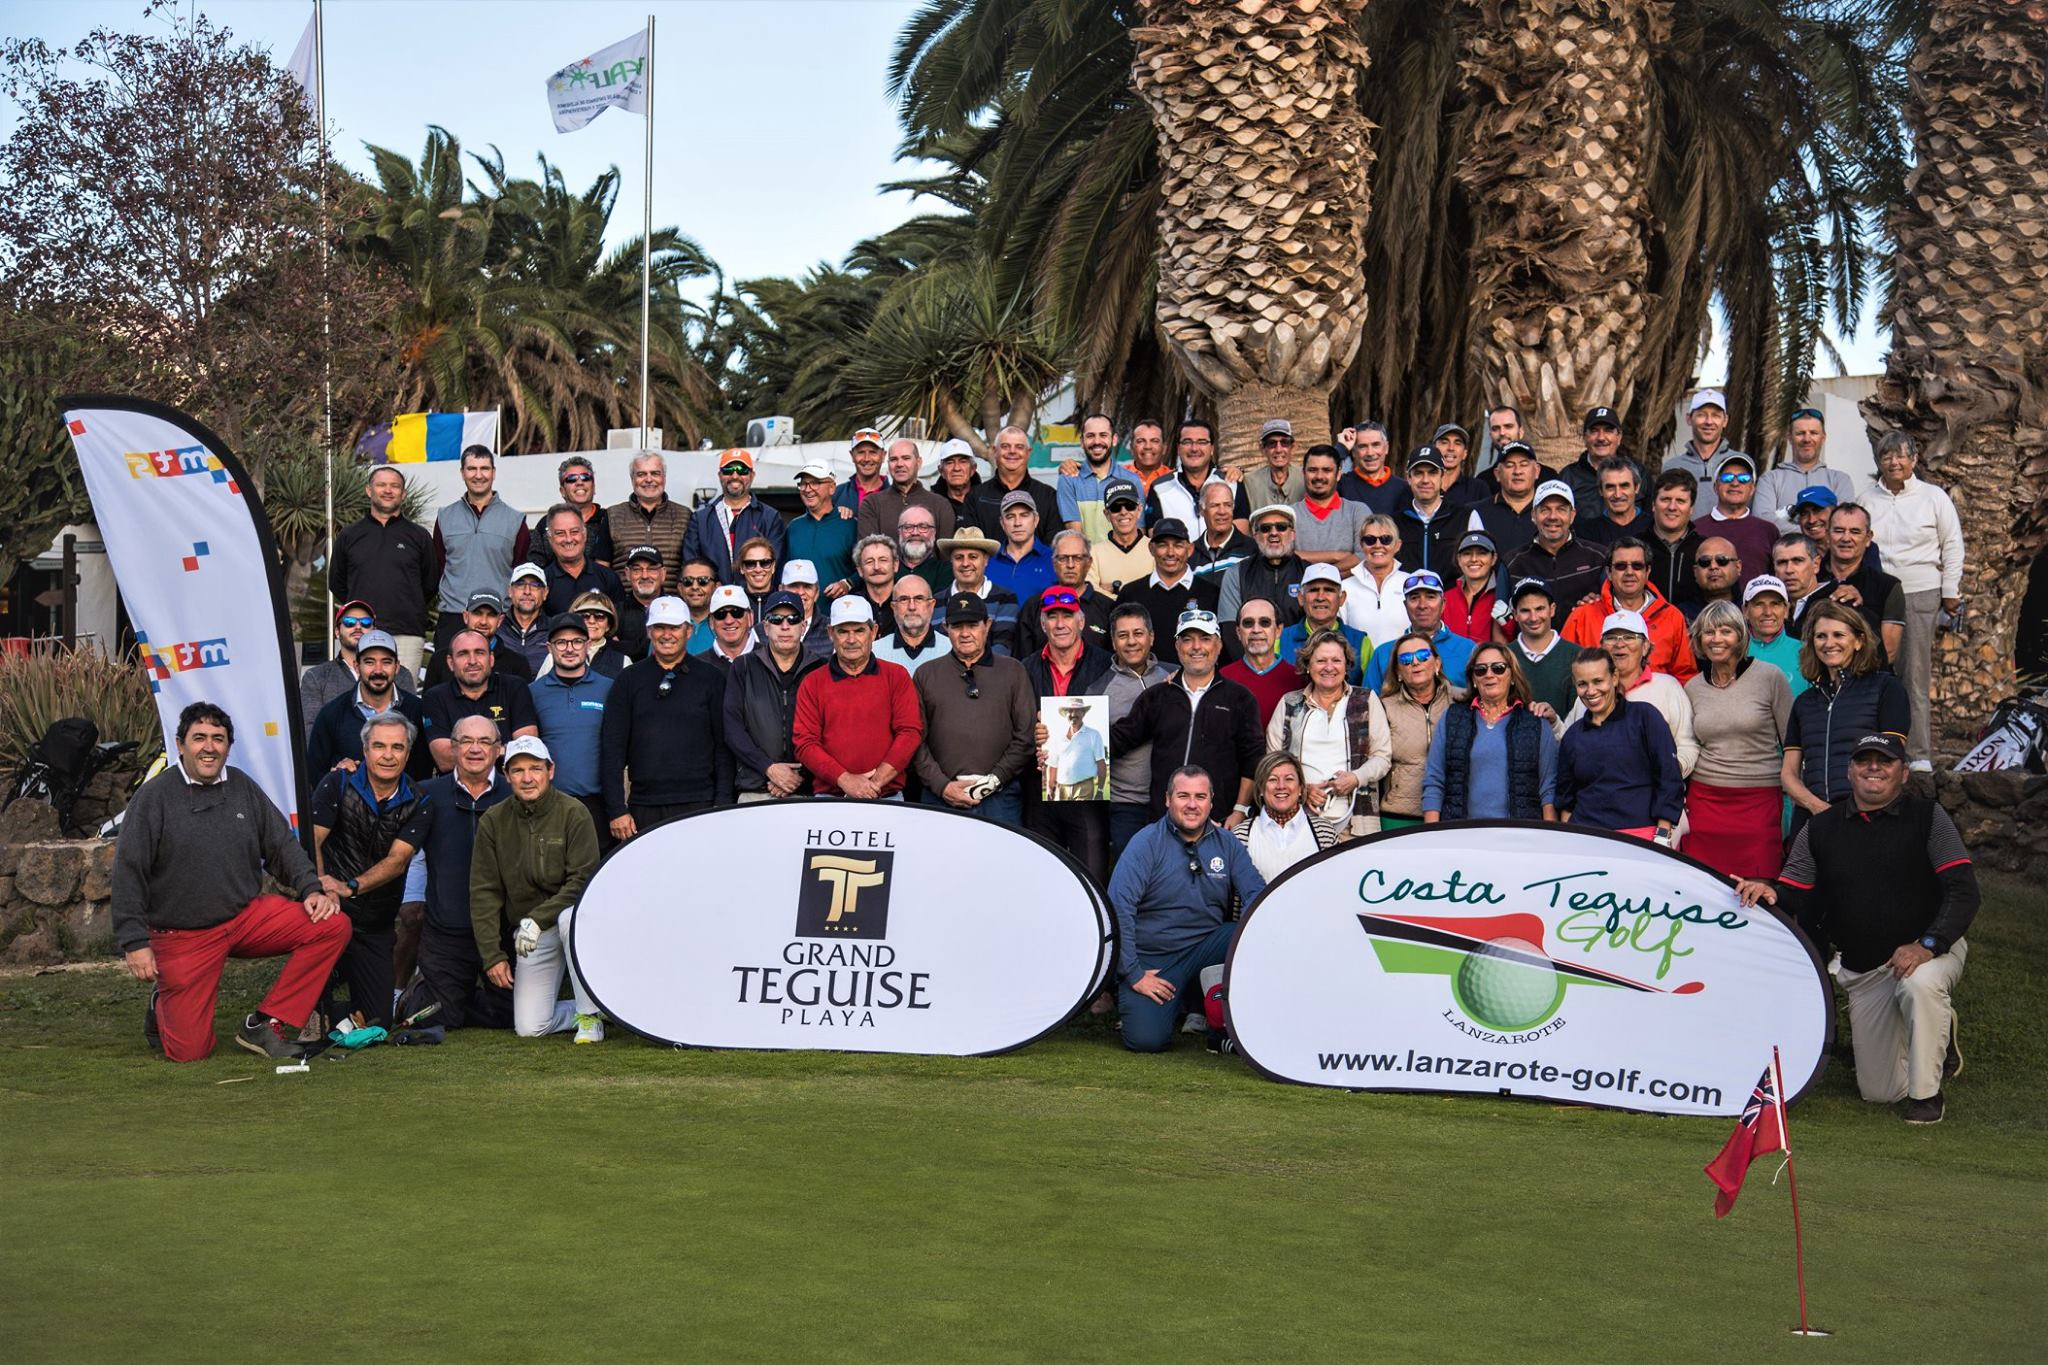 Amazing End for our Tournament Season with the VIII Grand Teguise Playa